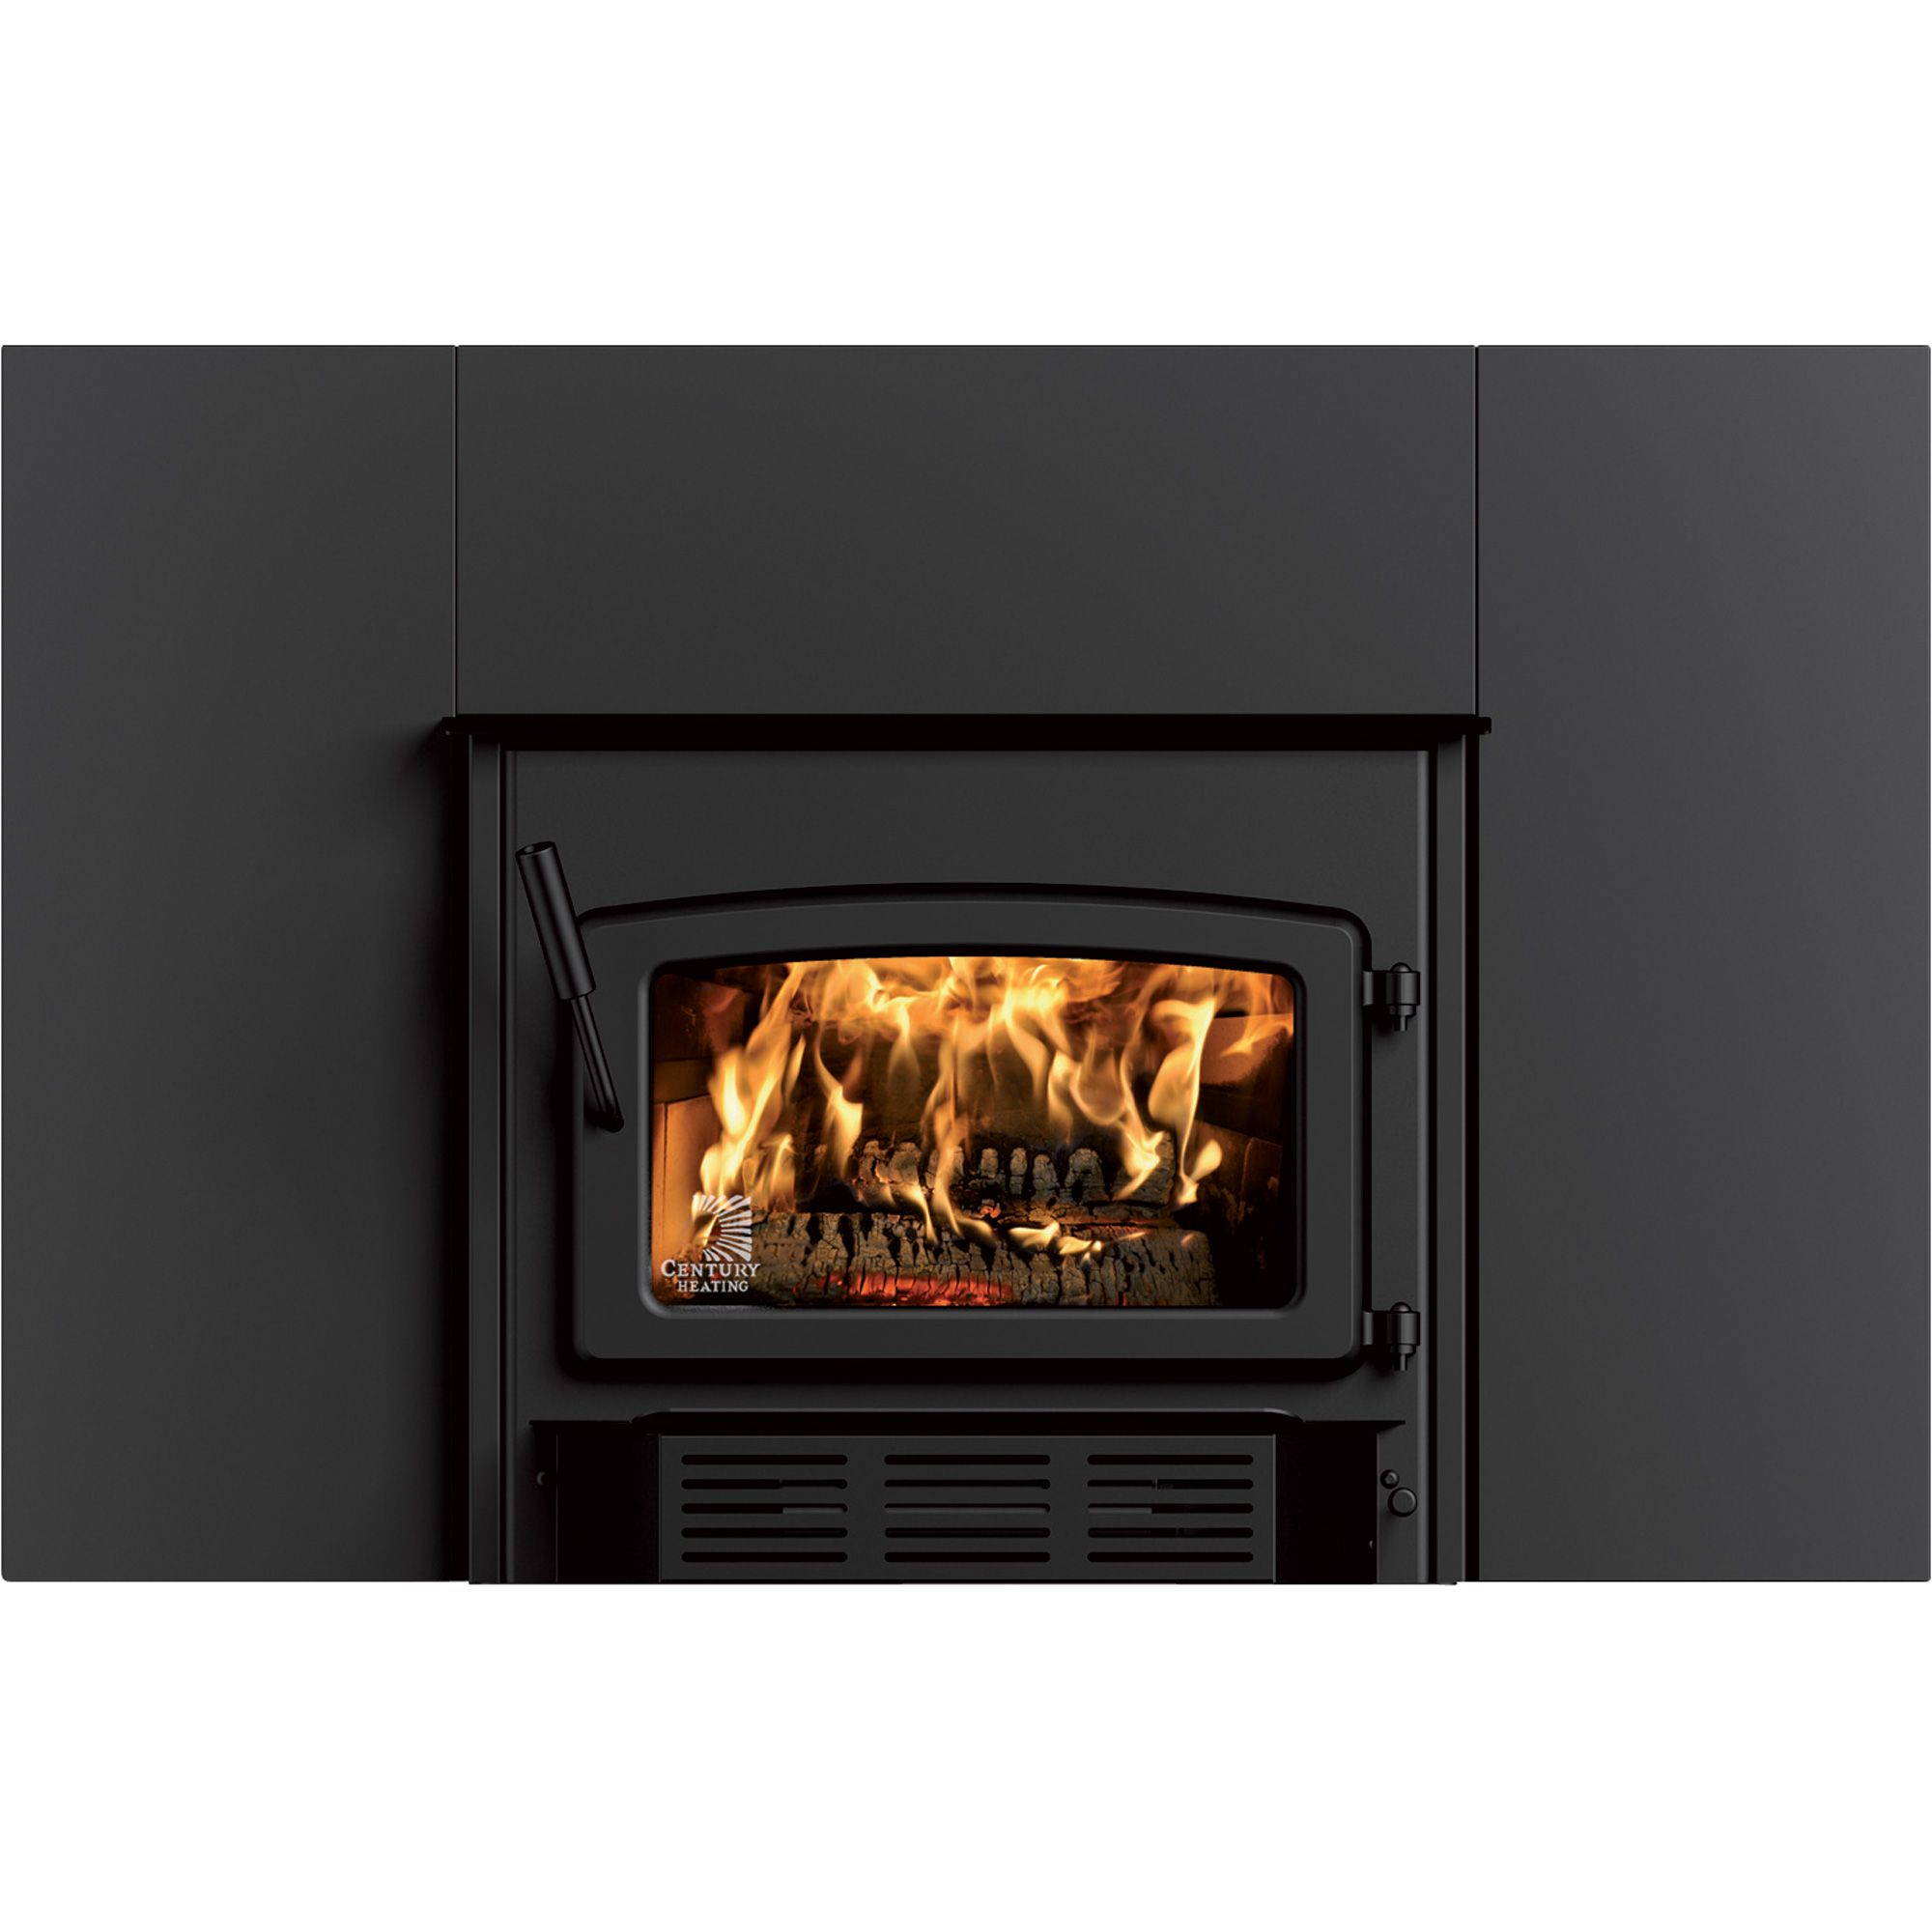 high efficiency wood burning fireplace. Stove Builder International Century High Efficiency Wood Insert: The Is A Efficiency, EPA Certified Insert. With Its Standard Blower And Large Burning Fireplace F